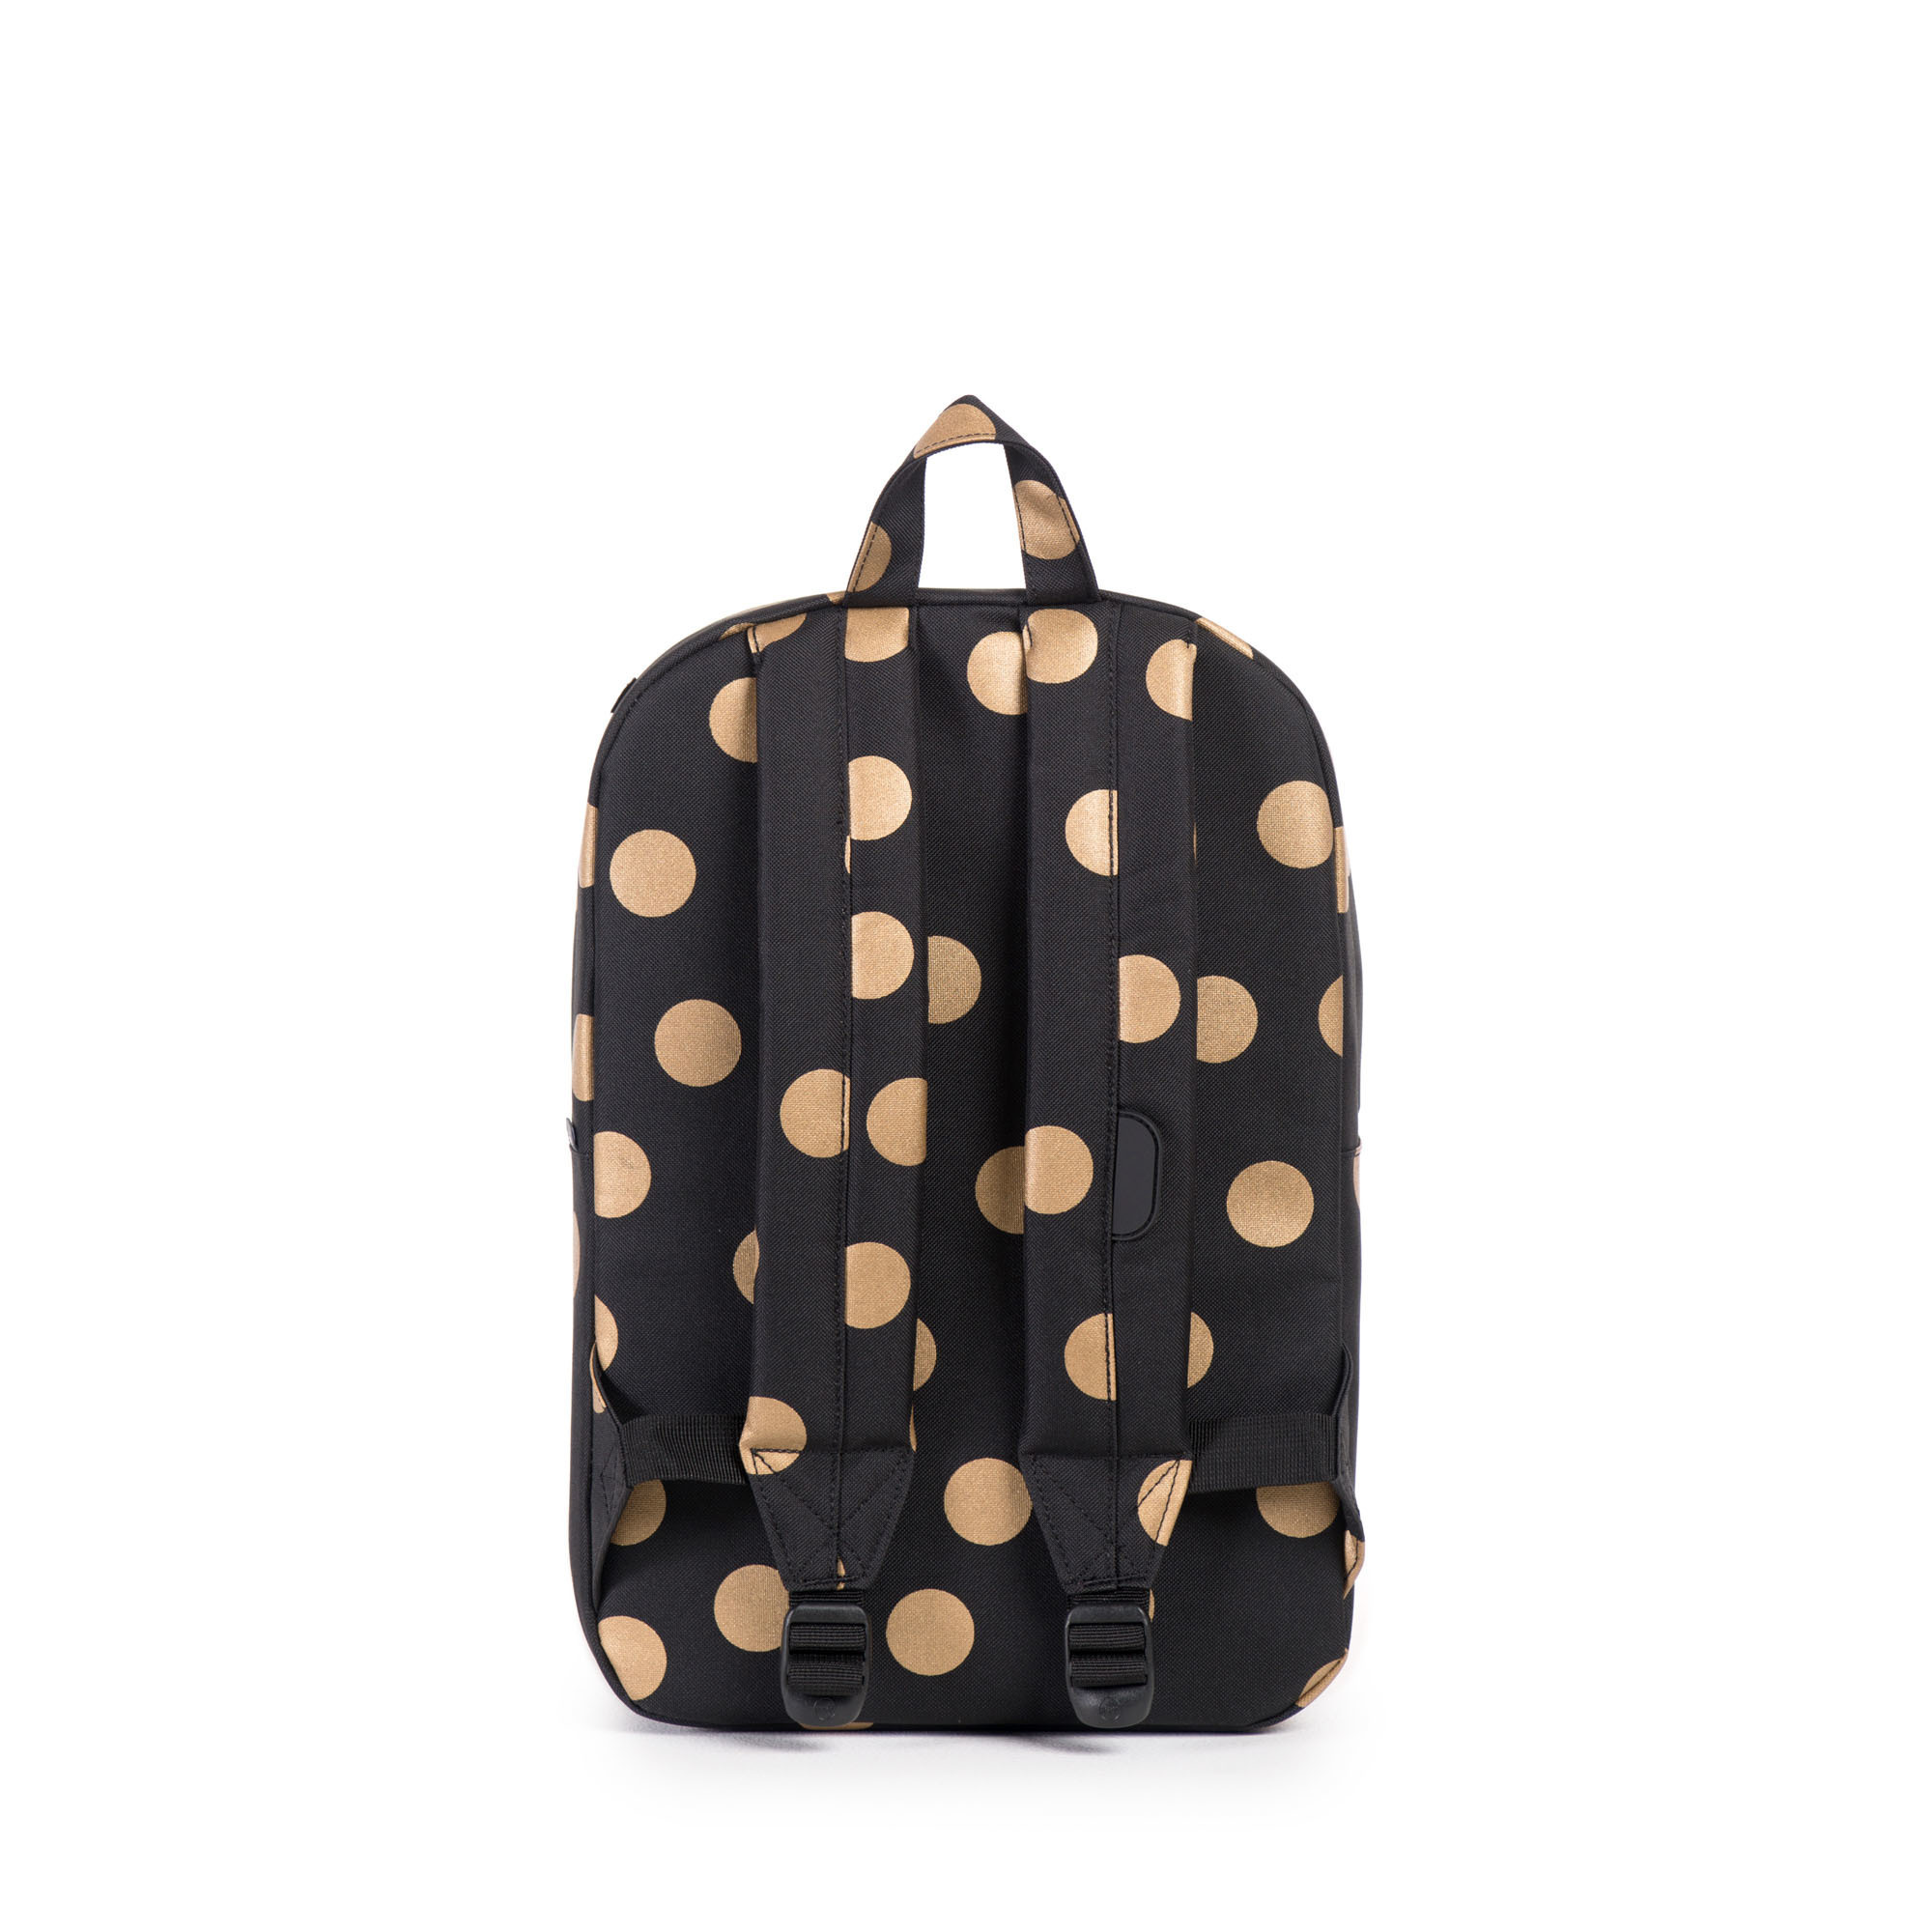 8d06b7694c0 Accessories · Womens · Backpacks   Bags · Pop Quiz Youth ...